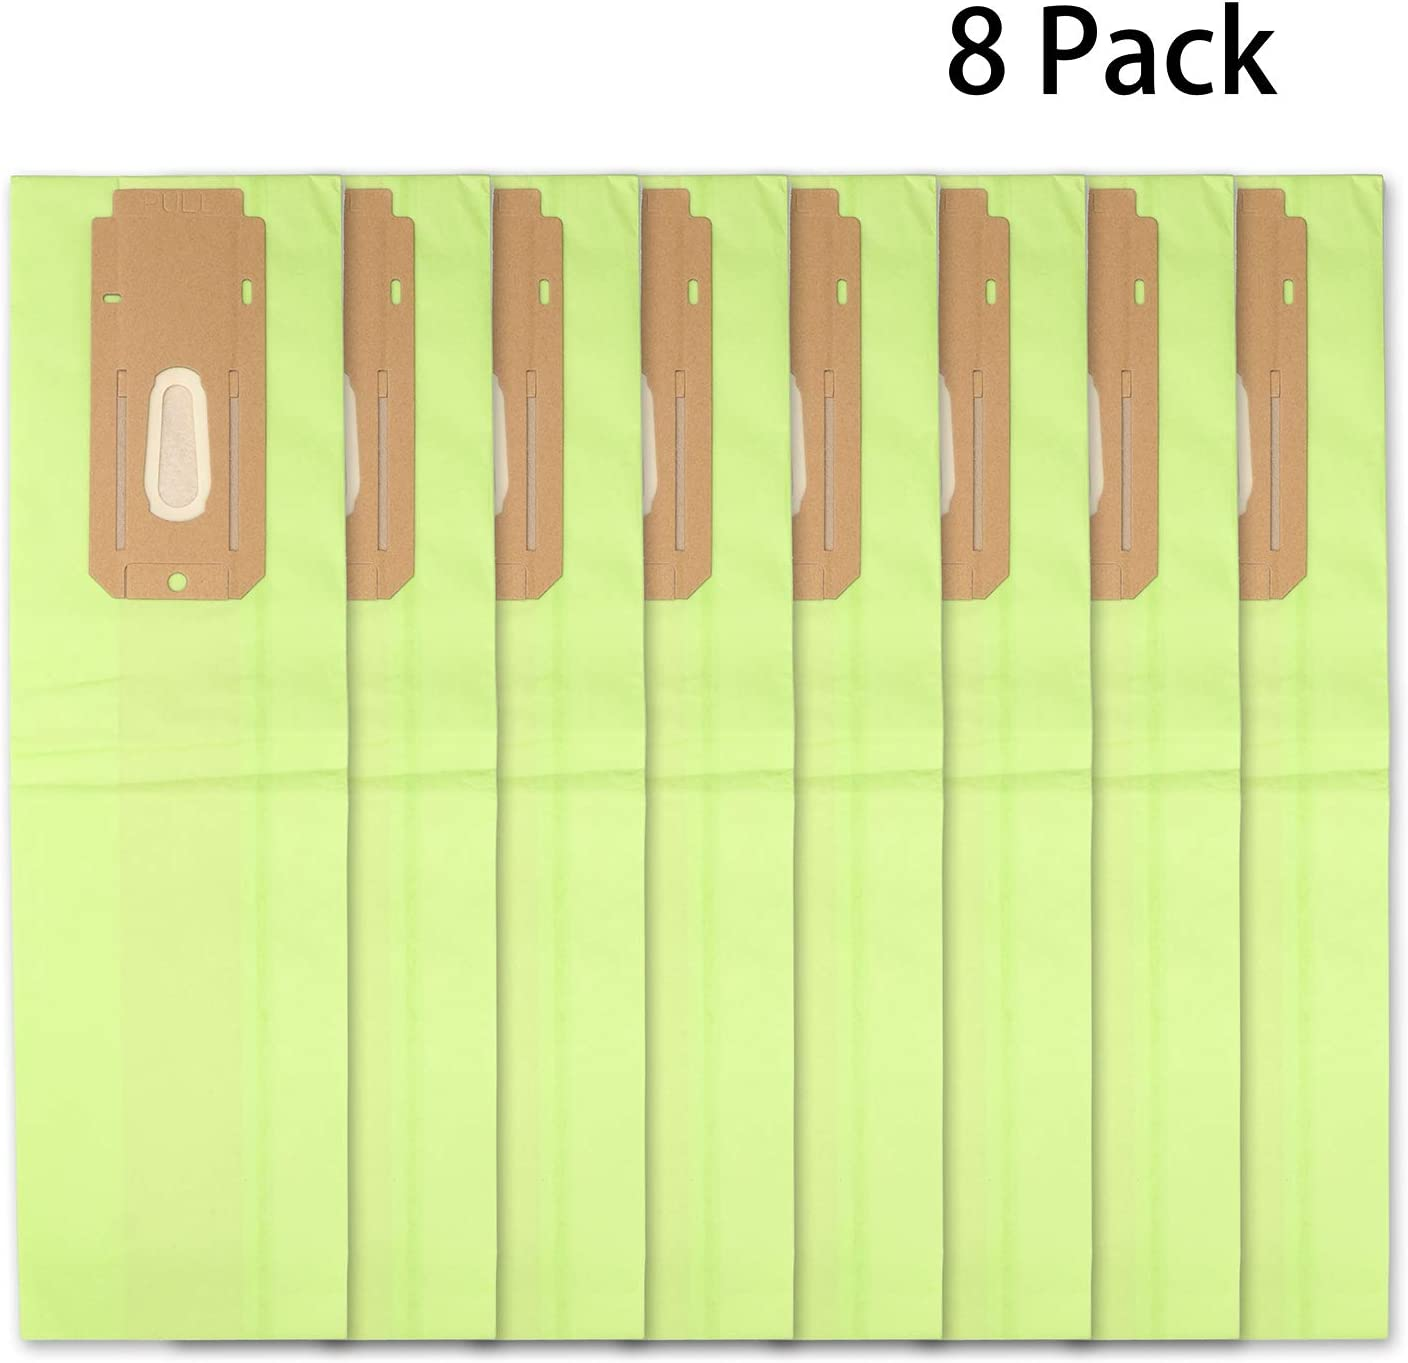 Aliddle Vacuum Cleaner Bags for Oreck Type CC,XL.Fit All Oreck XL Upright Vacuums(1 pack of 8 bags)